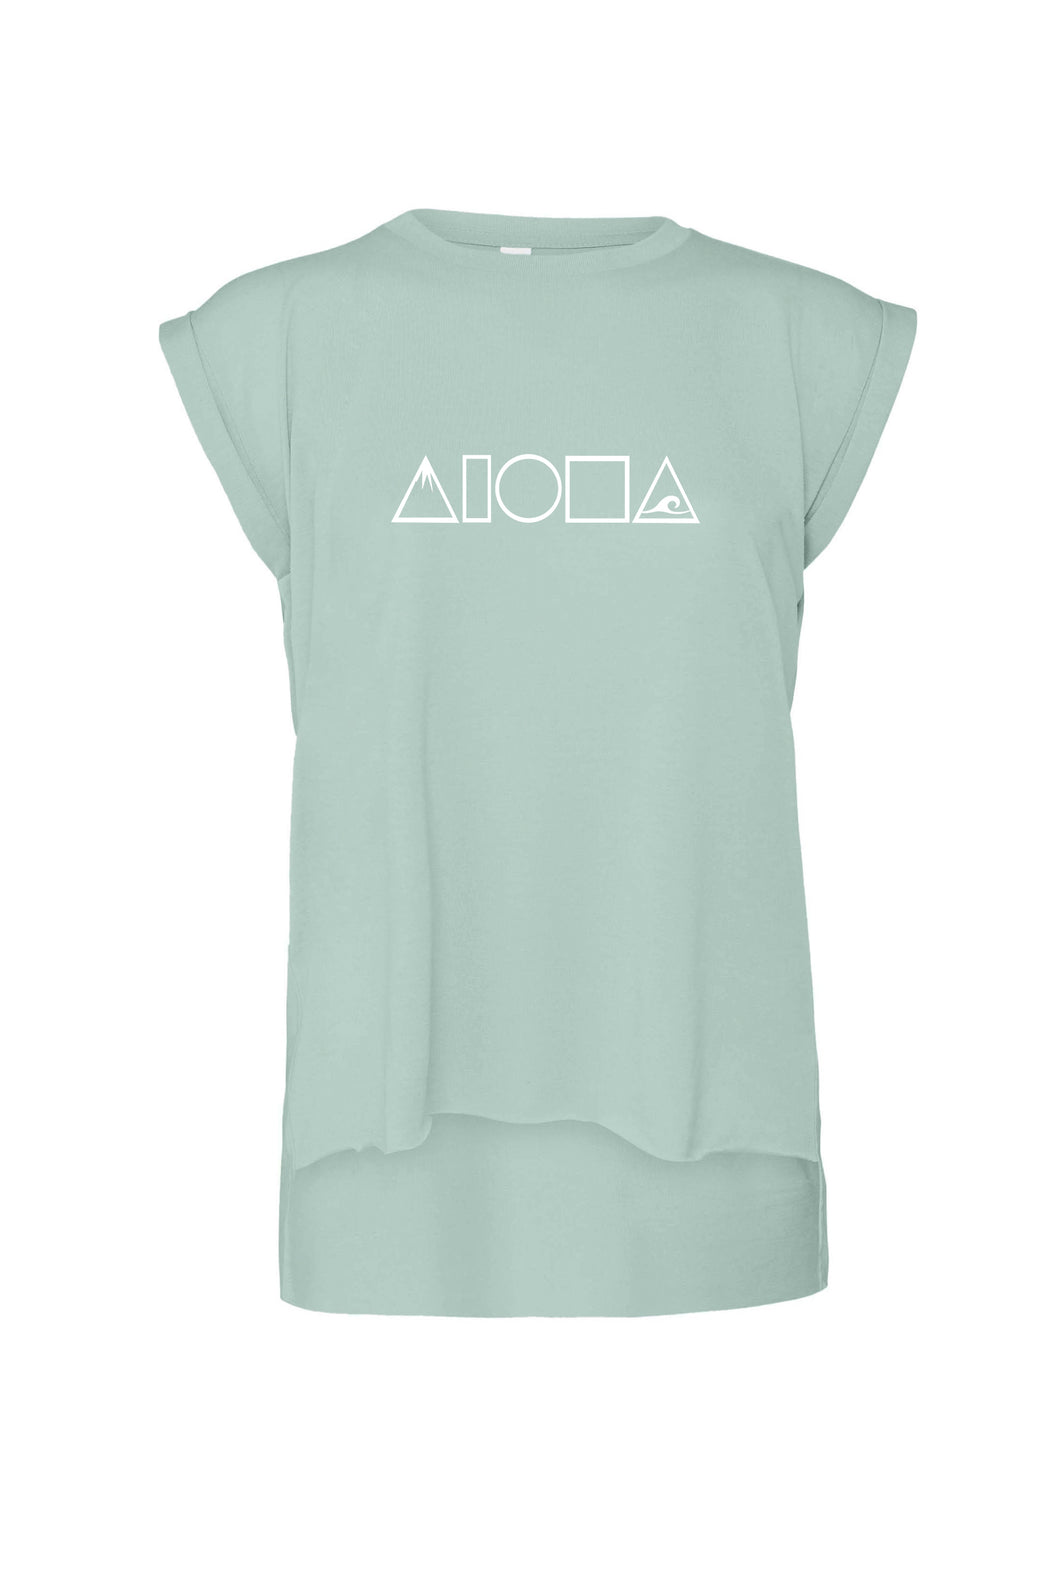 Dusty blue womens flowy muscle tee printed with white Aloha Shapes logo with mountains and saves in the A shapes. Designed in Maui Hawaii